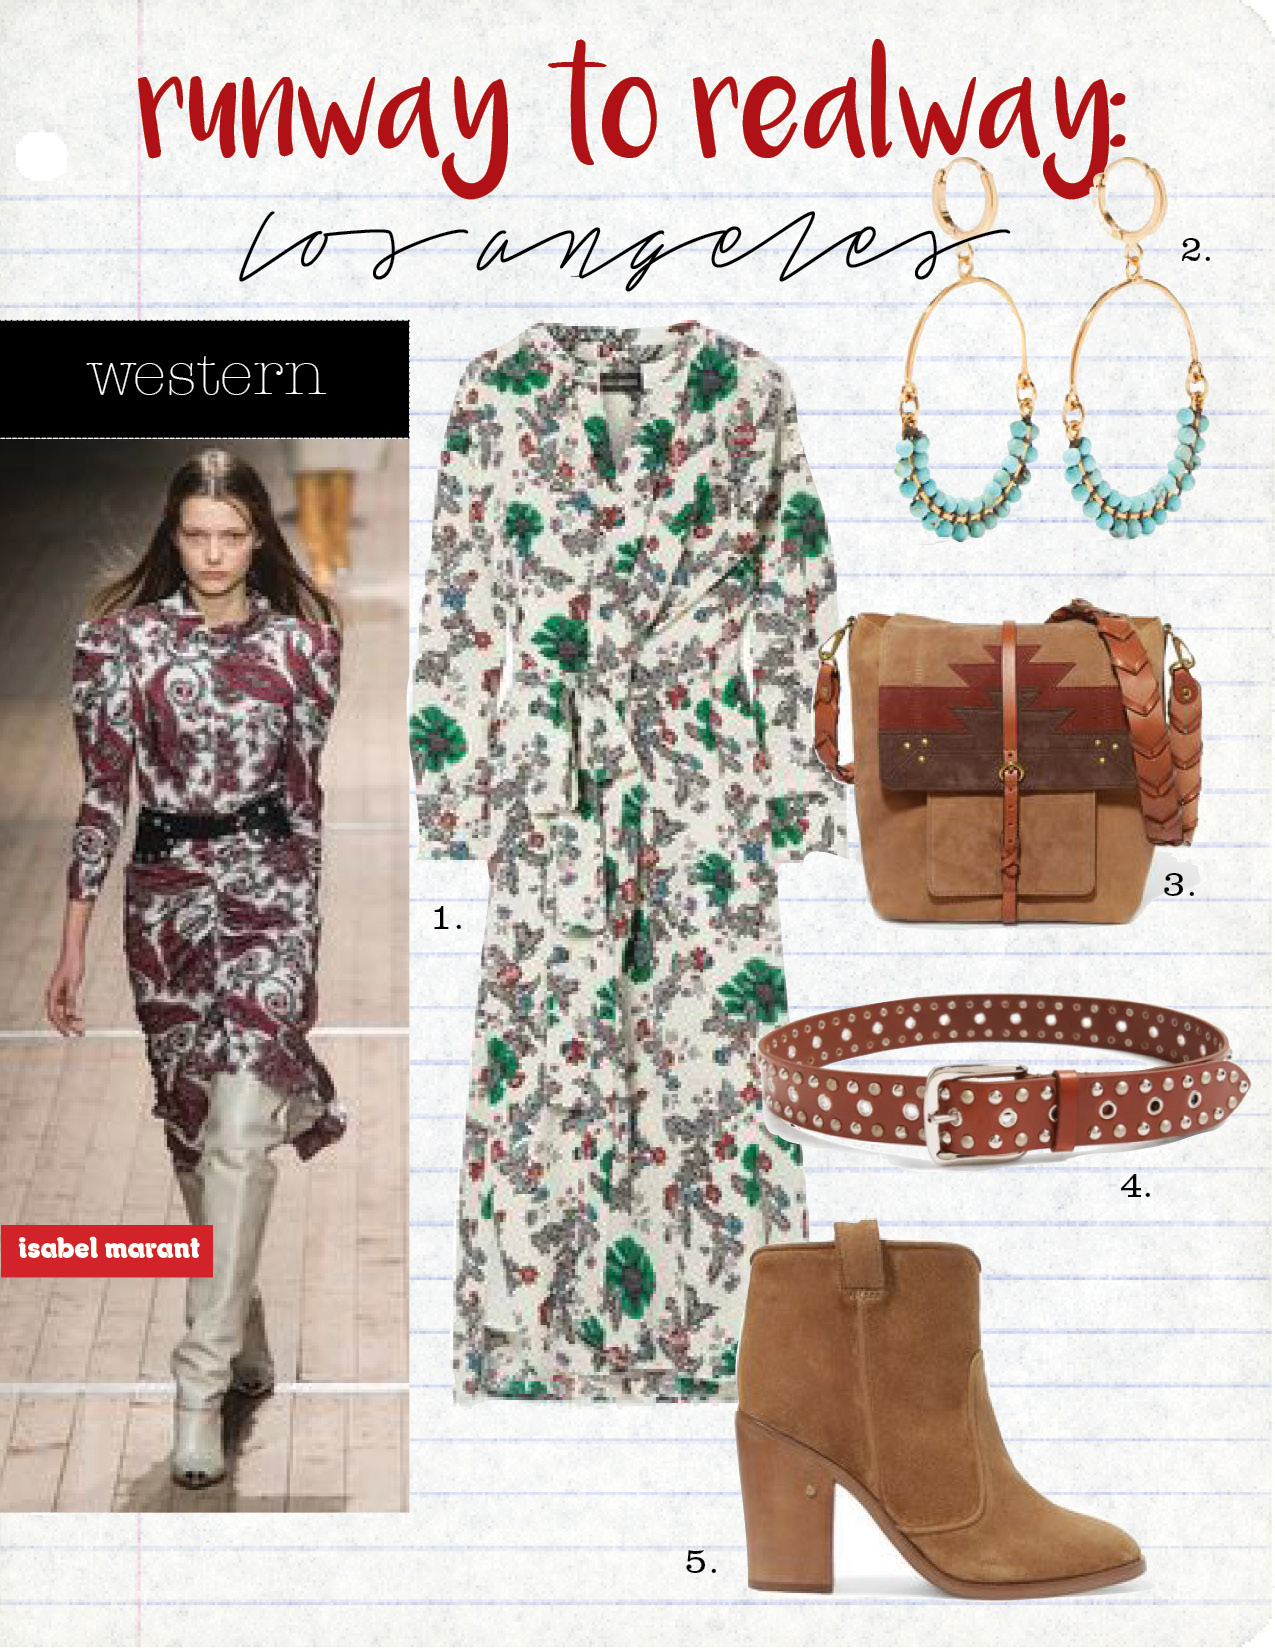 1. isabel marant calypso floral-print silk-blend wrap dress, $1435,  net-a-porter.com  2. isabel marant gold-plated beaded earrings, $170,  net-a-porter.com  3. jerome dreyfuss django leather-trimmed suede bag, $474,  net-a-porter.com  4. isabel marant rica stud-embellished leather belt, $159,  matchesfashion.com  5. laurence decade nico suede ankle boots, $765,  net-a-porter.com